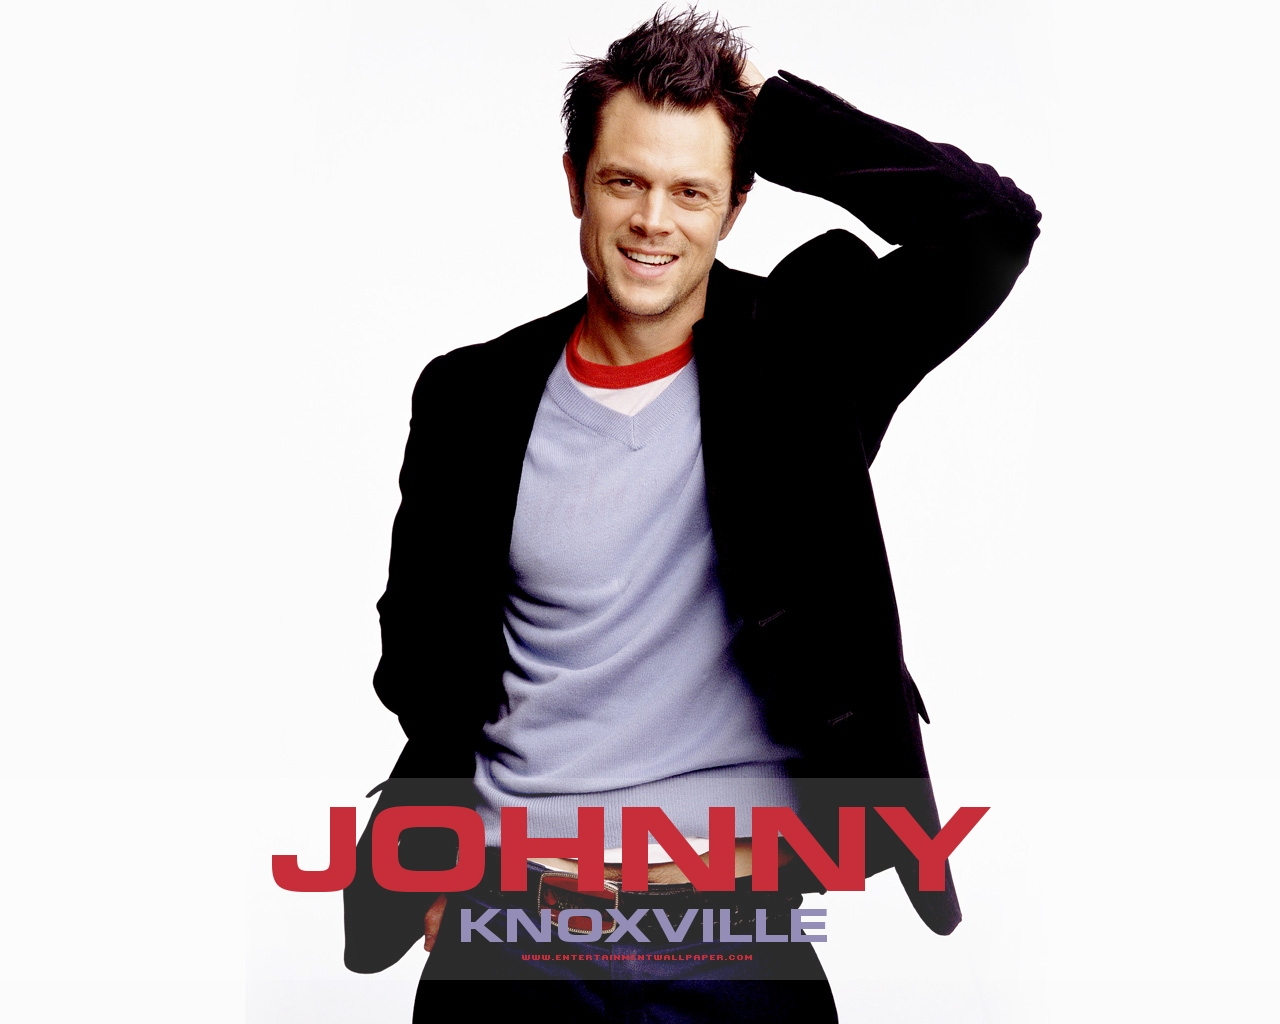 1280x1024 - Johnny Knoxville Wallpapers 1